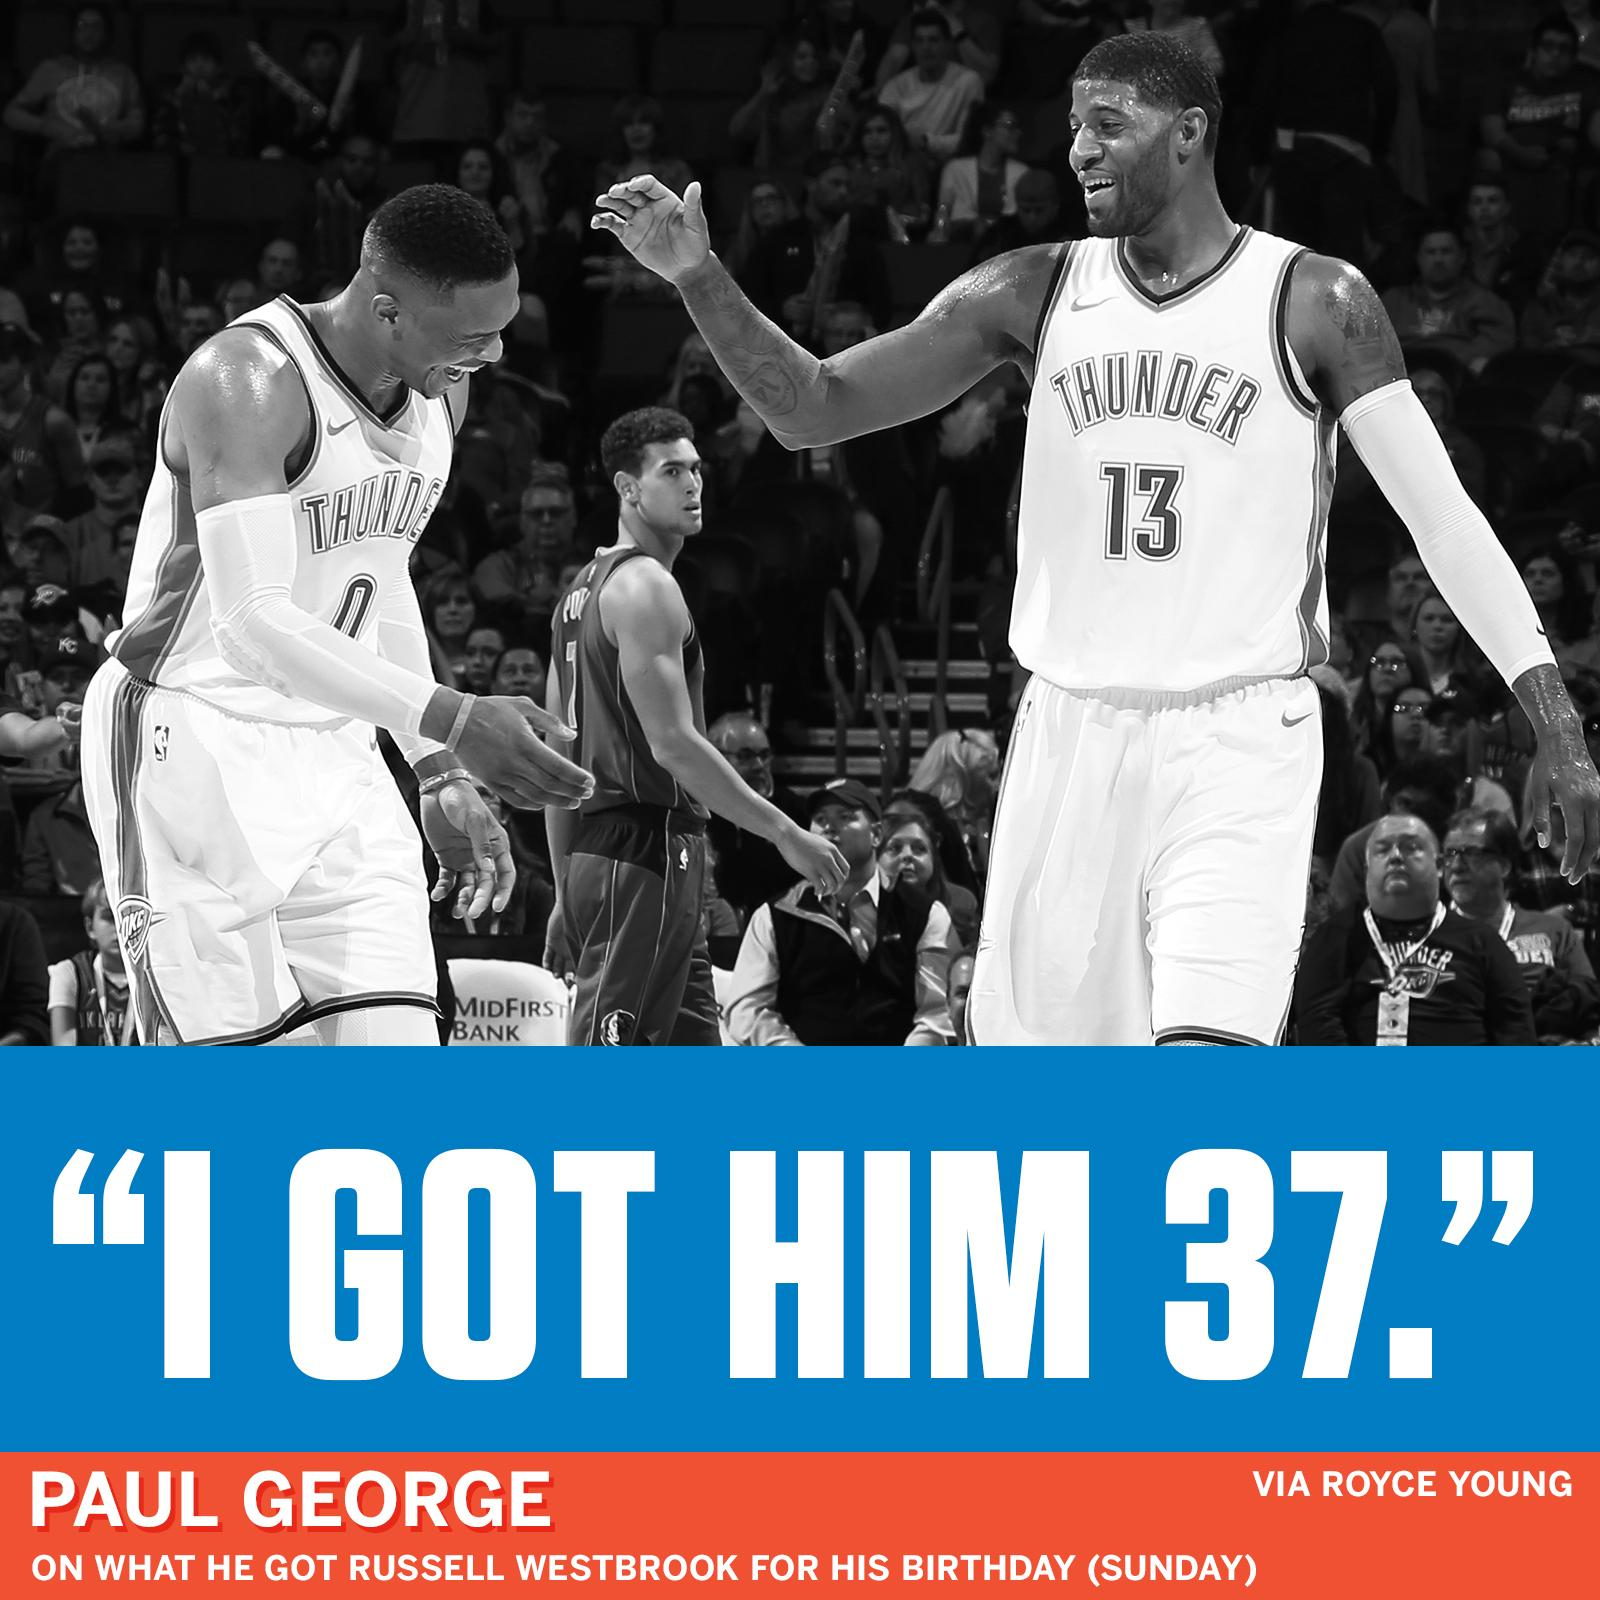 Paul George was asked if he got Russ anything for his 29th birthday: https://t.co/qCBwJxQVfk